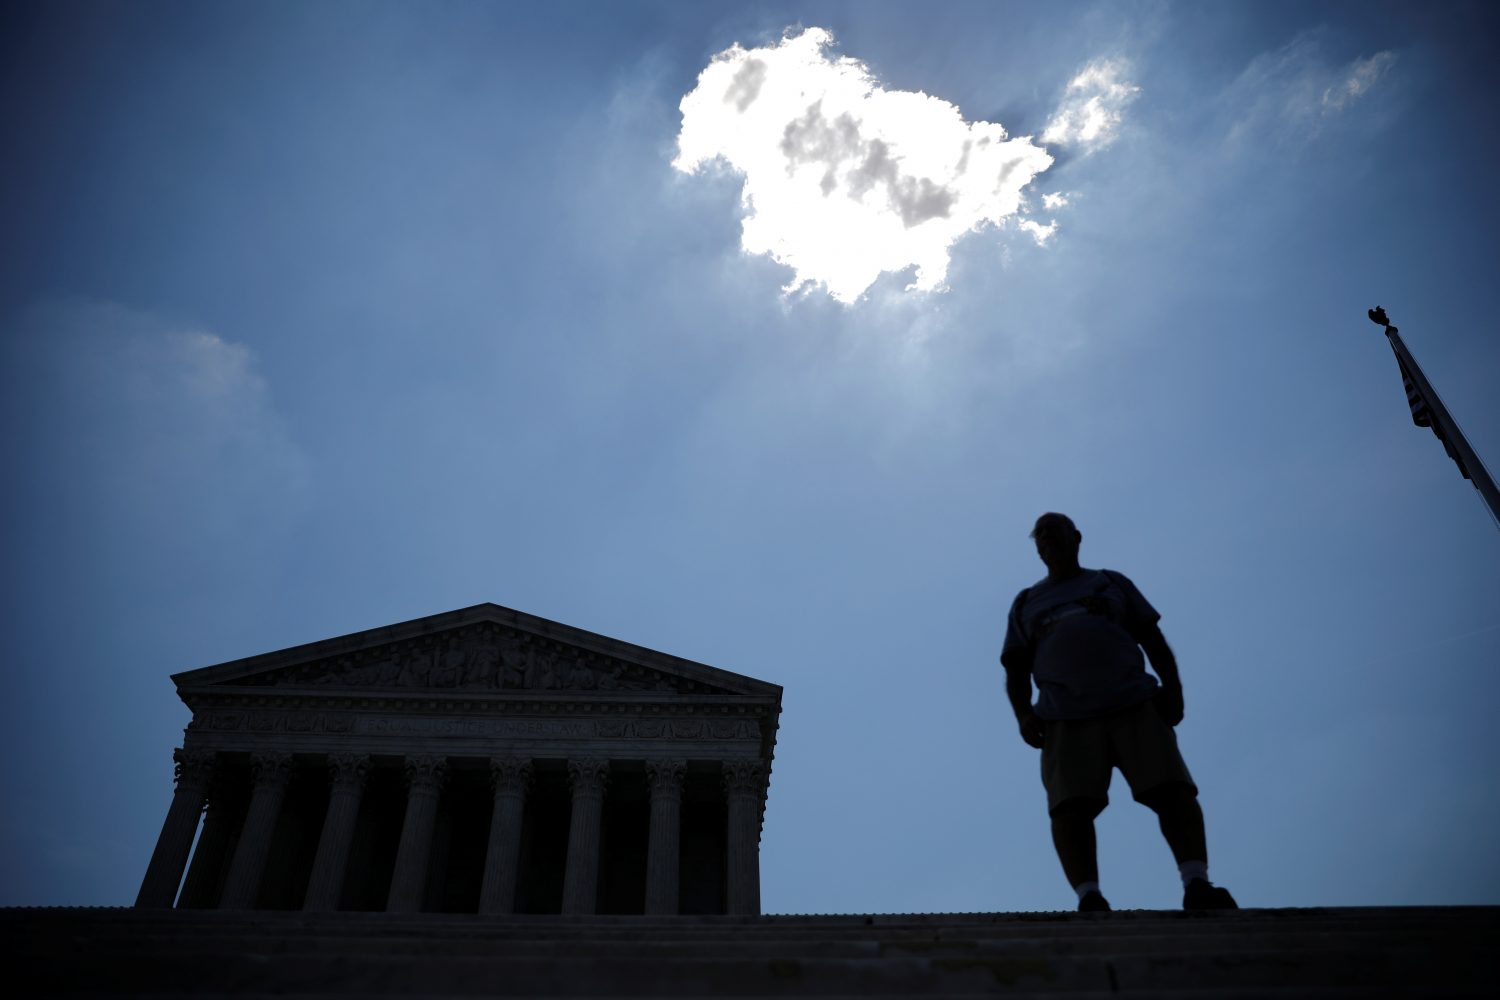 A man stands outside the U.S. Supreme Court in Washington, U.S., June 27, 2019. REUTERS/Carlos Barria